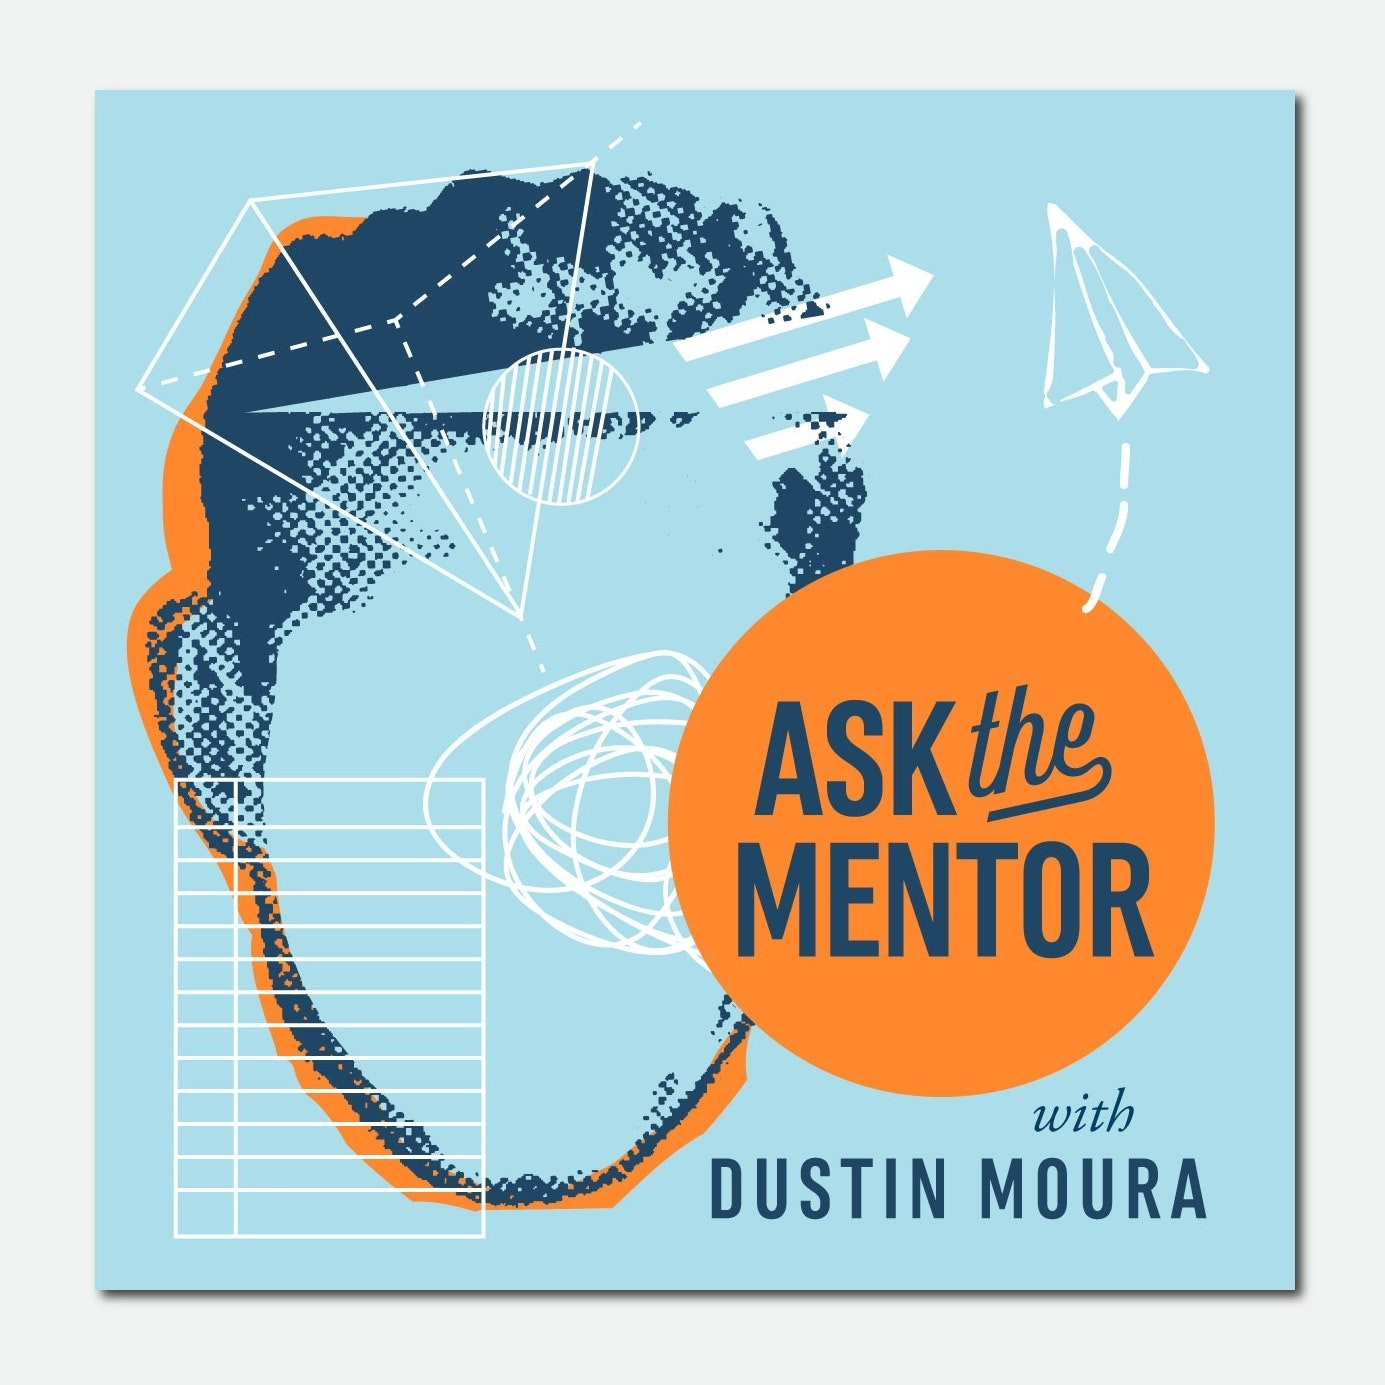 podcast cover for Ask the mentor